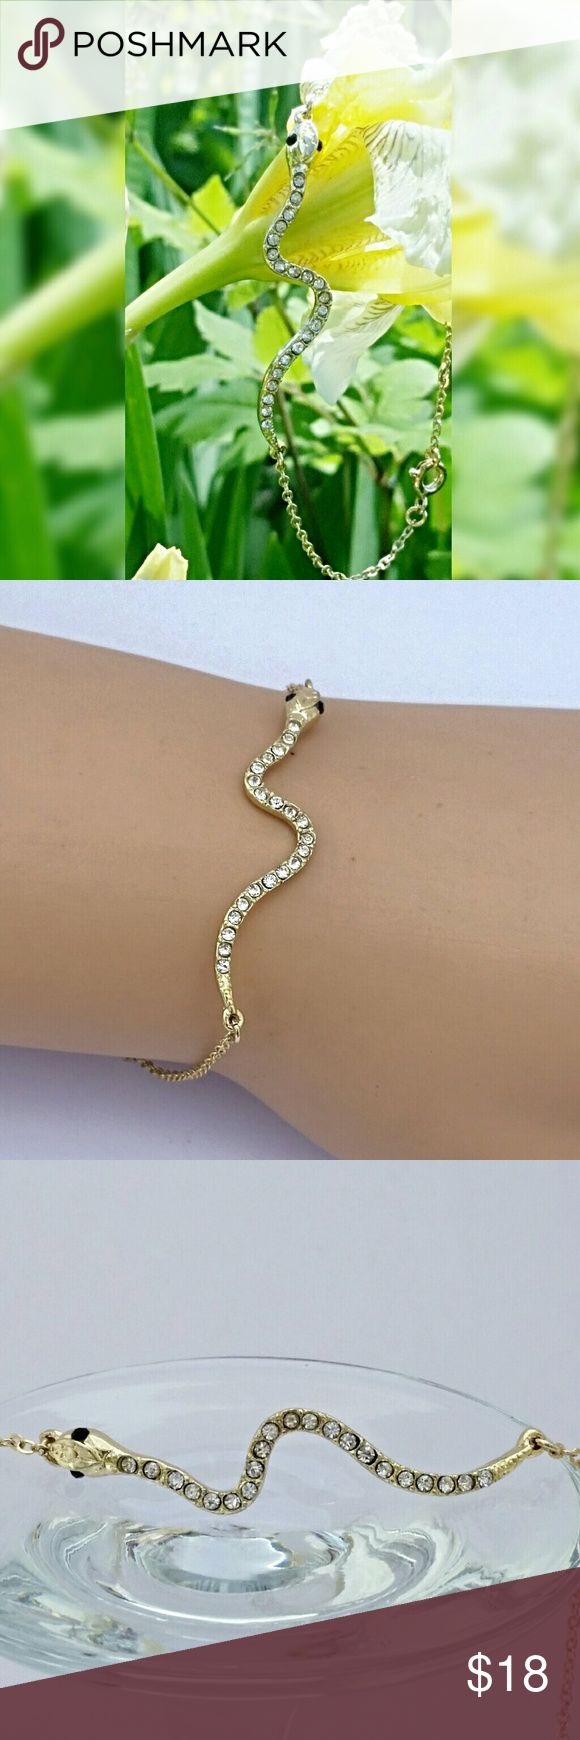 """Snake Bracelet Show off your unique style in this slinky snake bracelet. 2"""" long snake is adorned with crystals on a fine gold toned chain. 7""""long. Lady Adorned Boutique Jewelry Bracelets"""